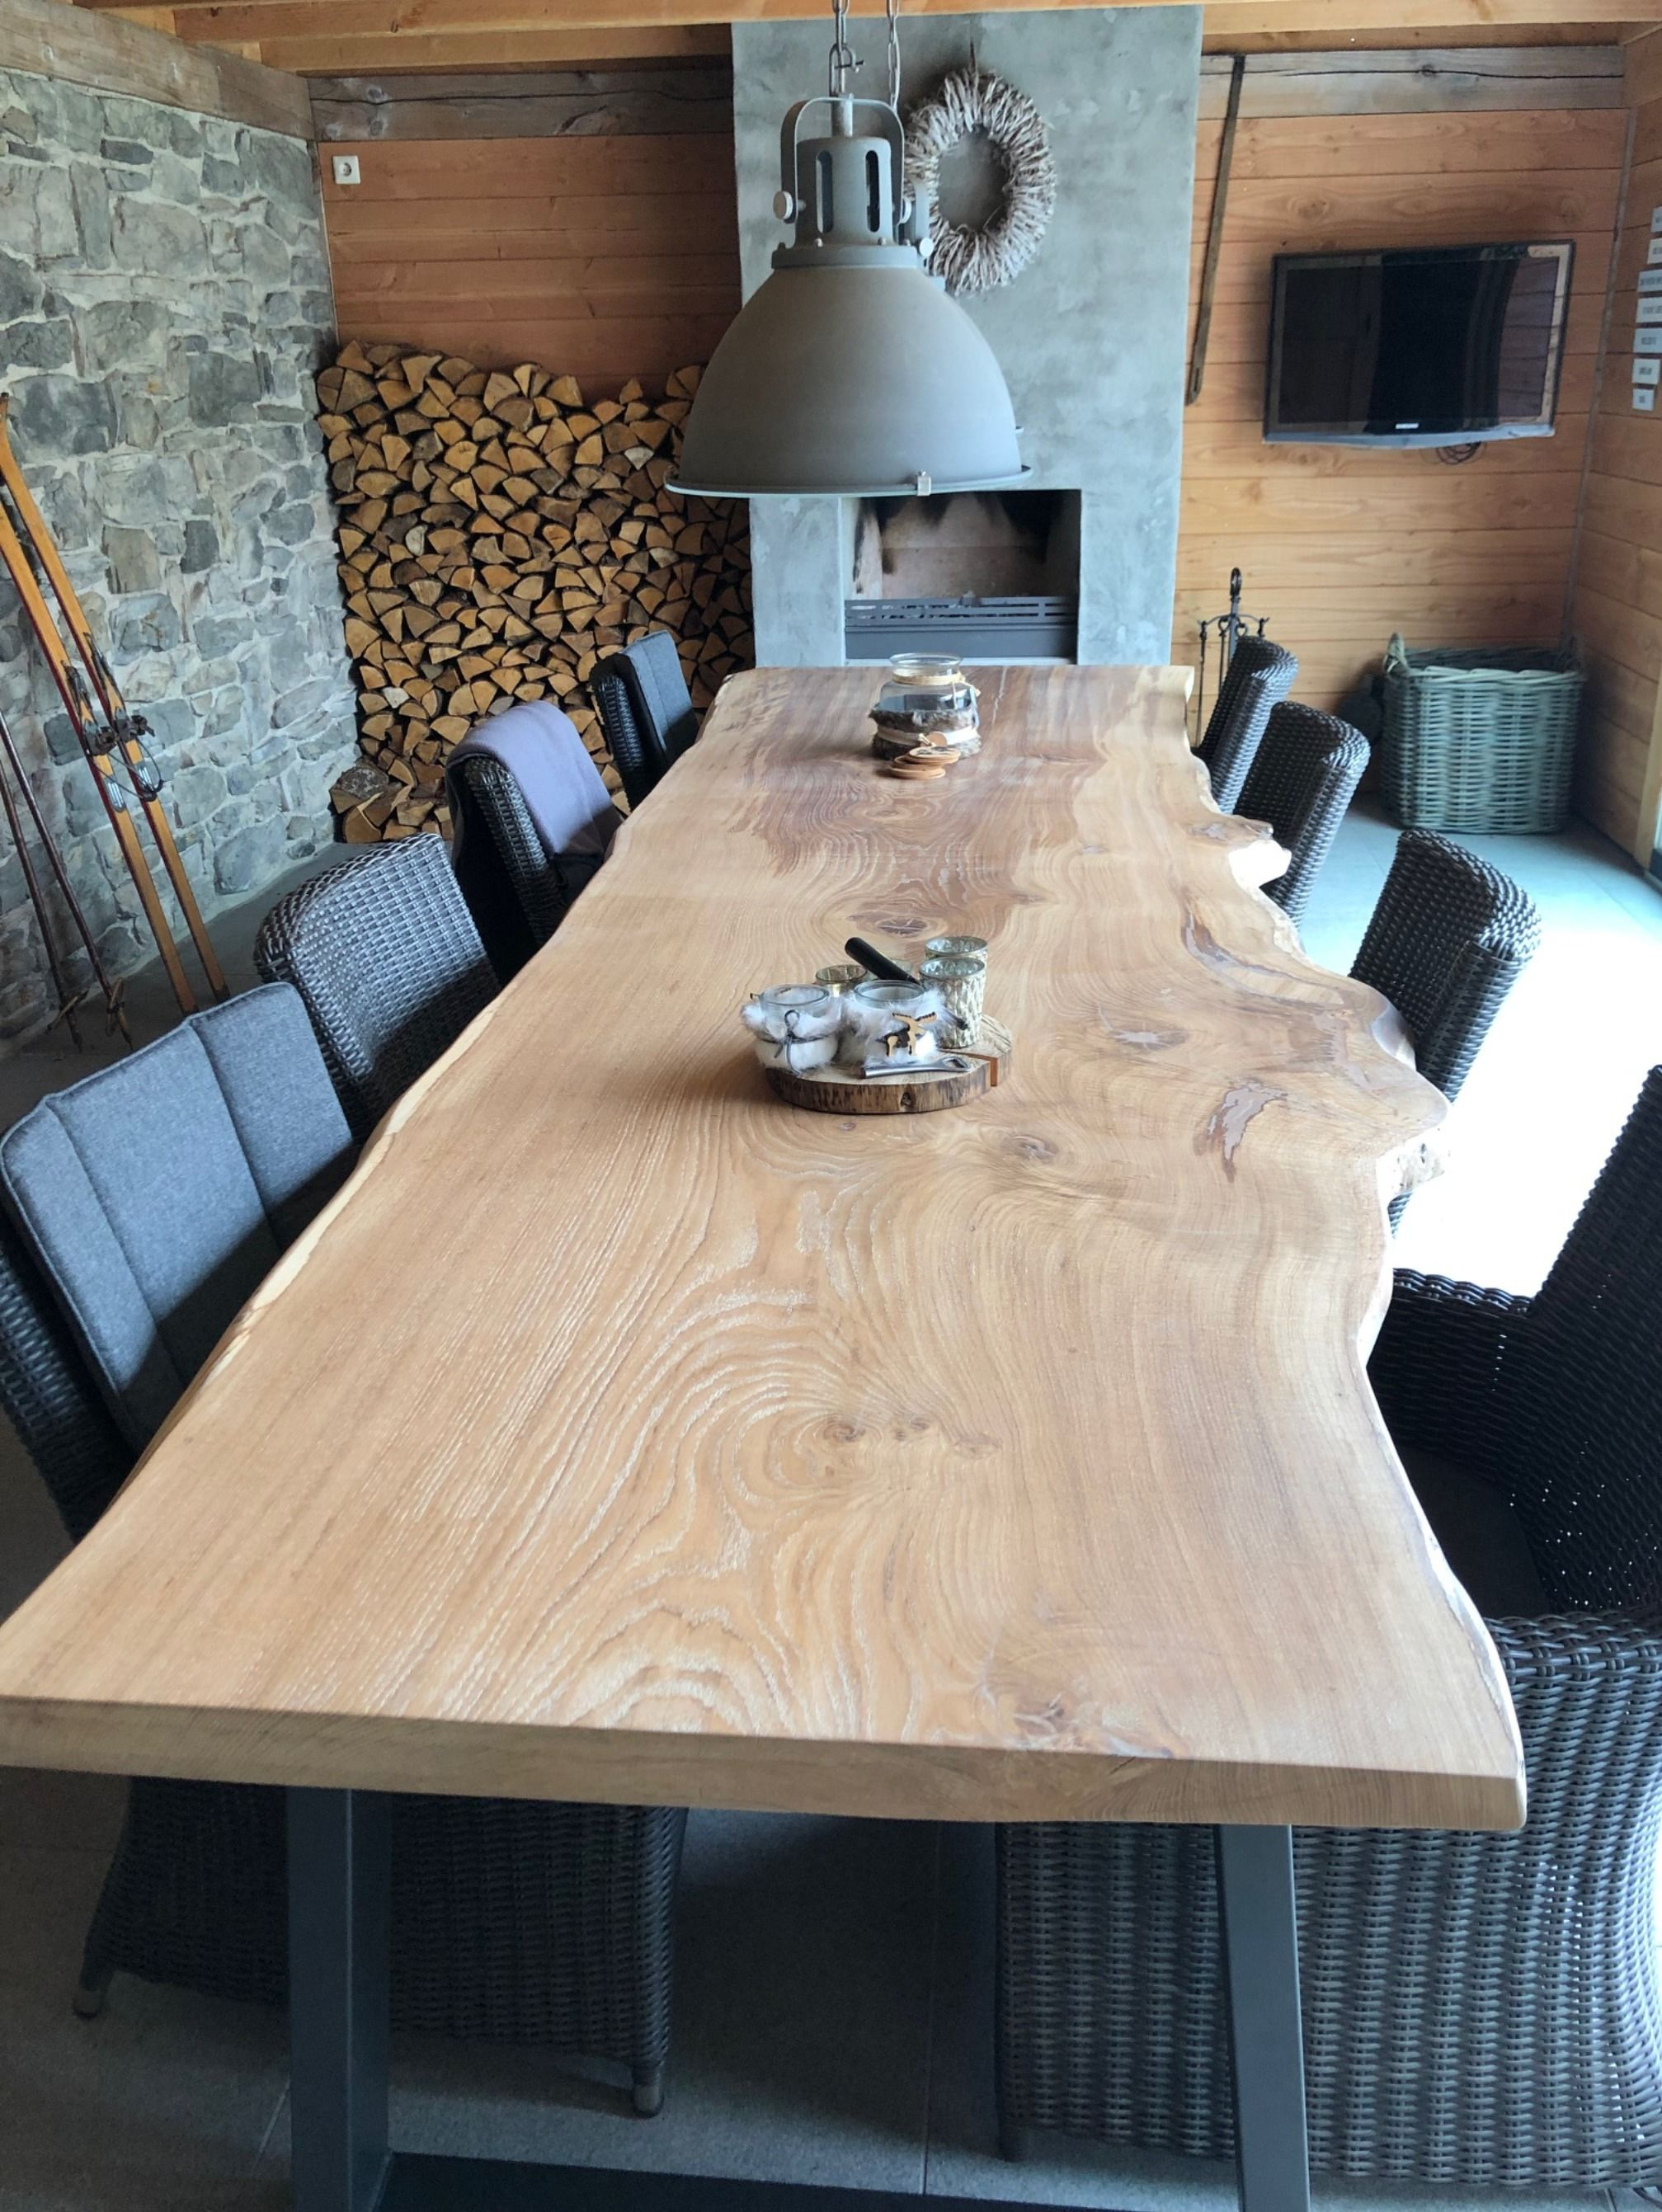 Boomstam Tafel 4 Meter.Boomstamtafel 4 Meter Collection Meters